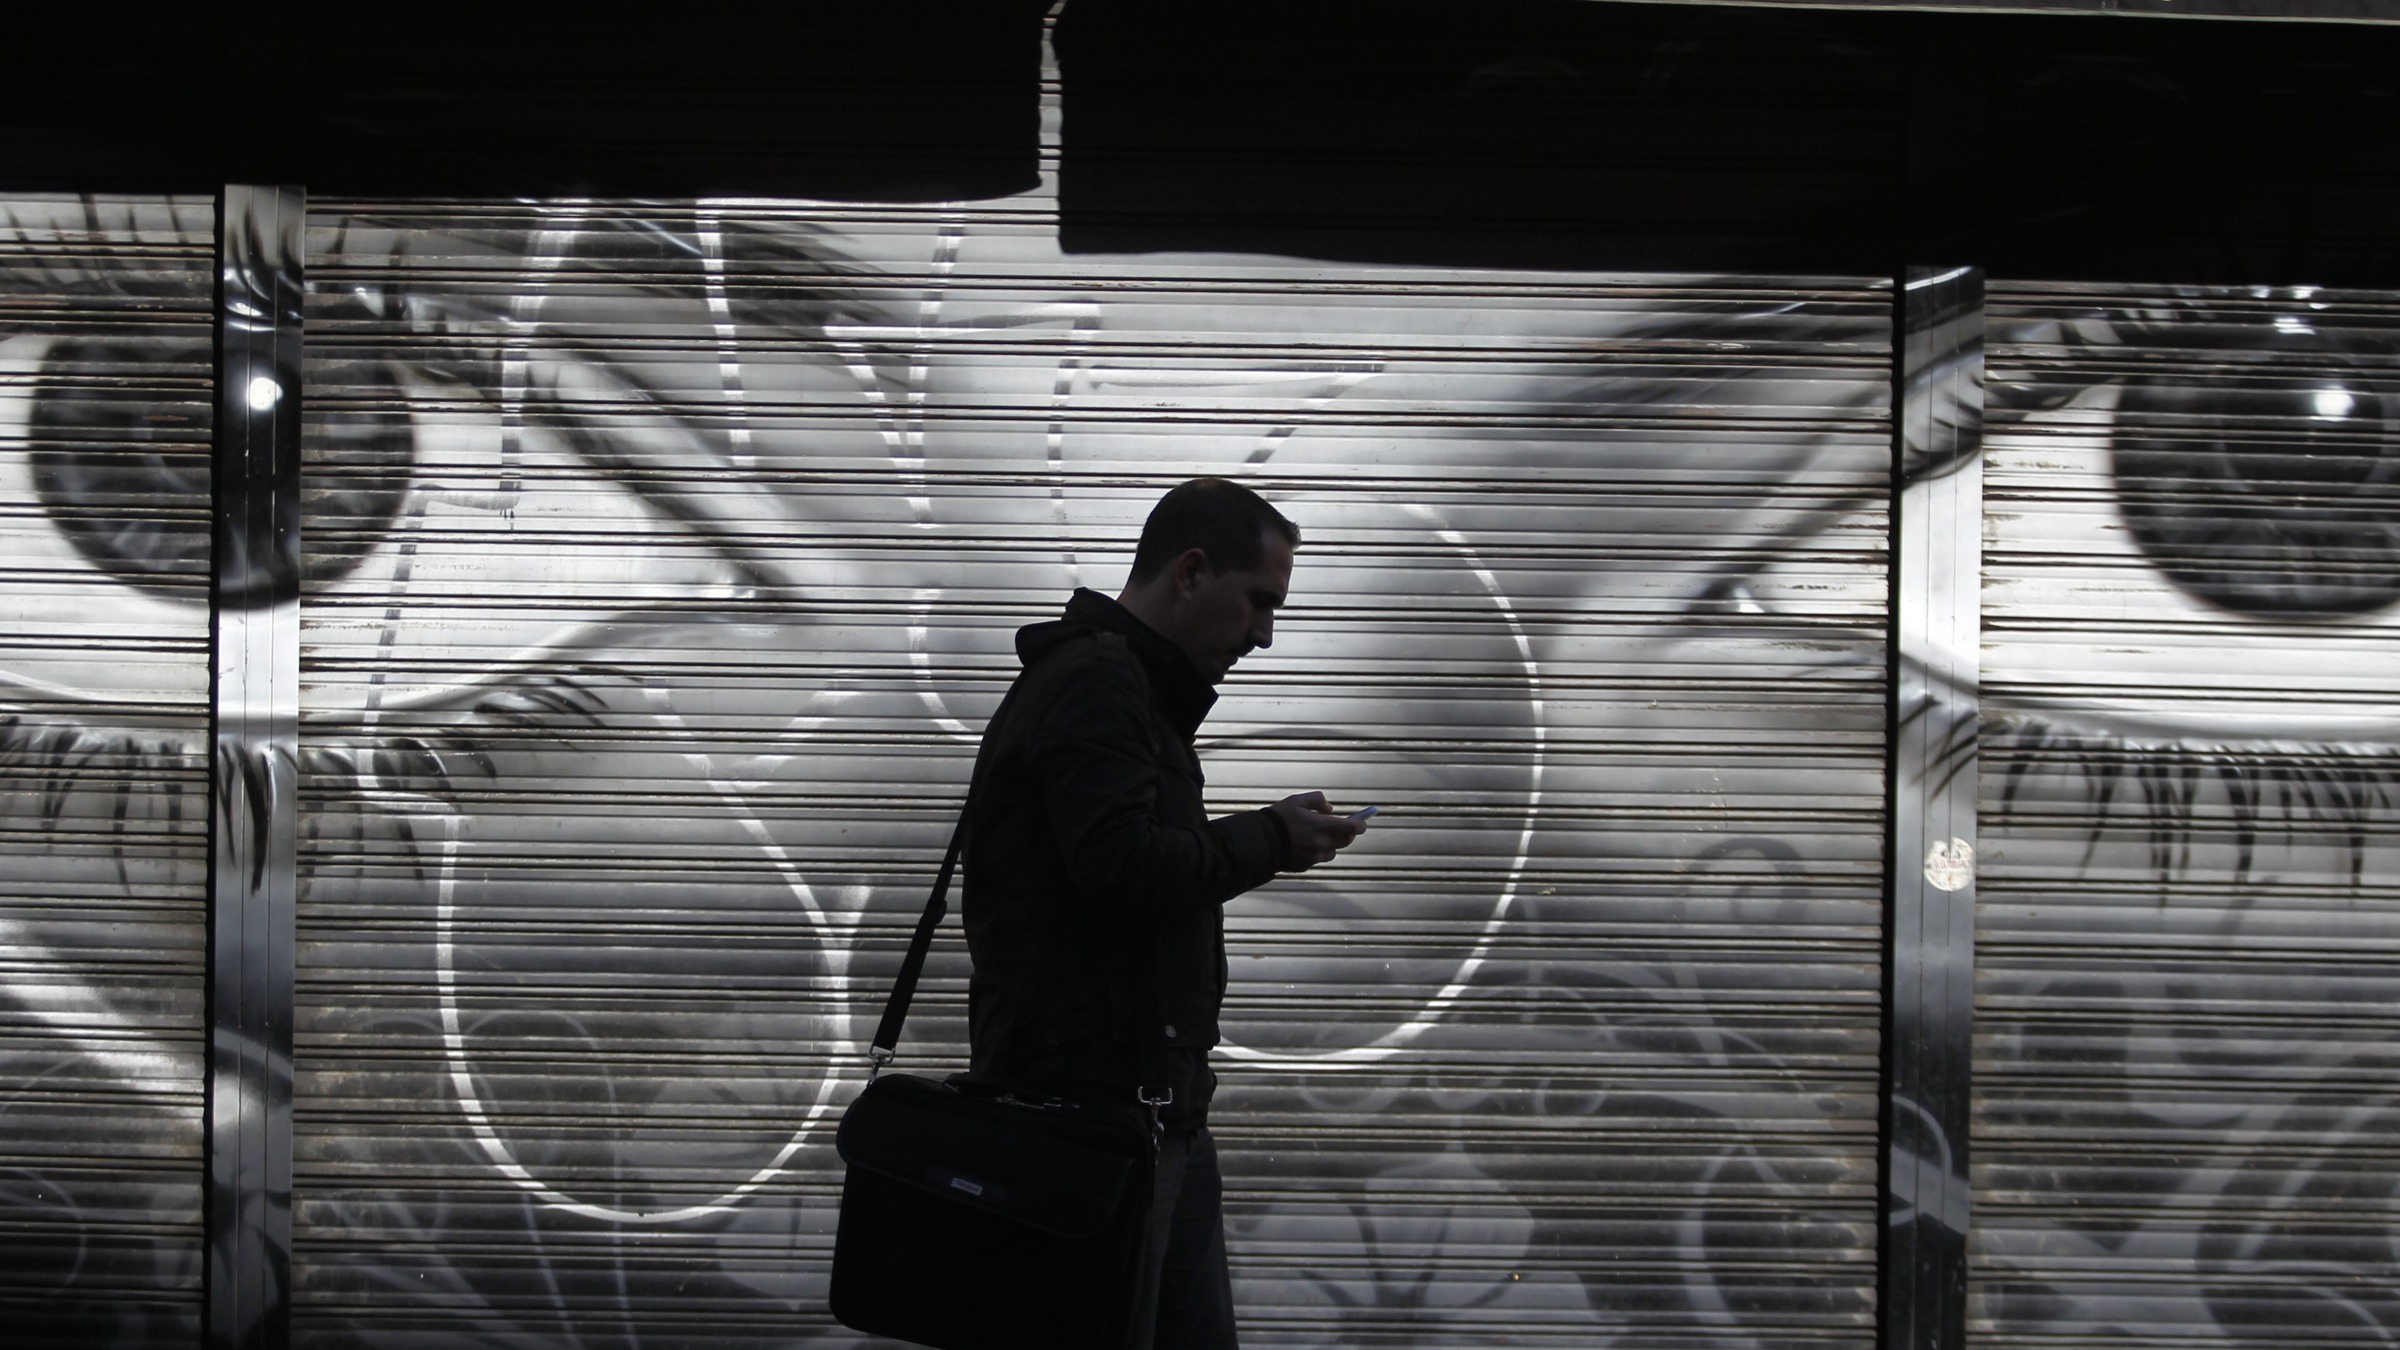 """A man looks at his cell phone as he walks on the street in downtown Madrid, Thursday, Oct. 31, 2013. On Wednesday Spain's Prime Minister Mariano Rajoy said that the head of Spain's intelligence services will address Parliament over allegations that Spain was a target for surveillance by the U.S. National Security Agency. He reiterated that if confirmed, such activity is """"inappropriate and unacceptable between partners and friends."""" (AP Photo/Francisco Seco)"""